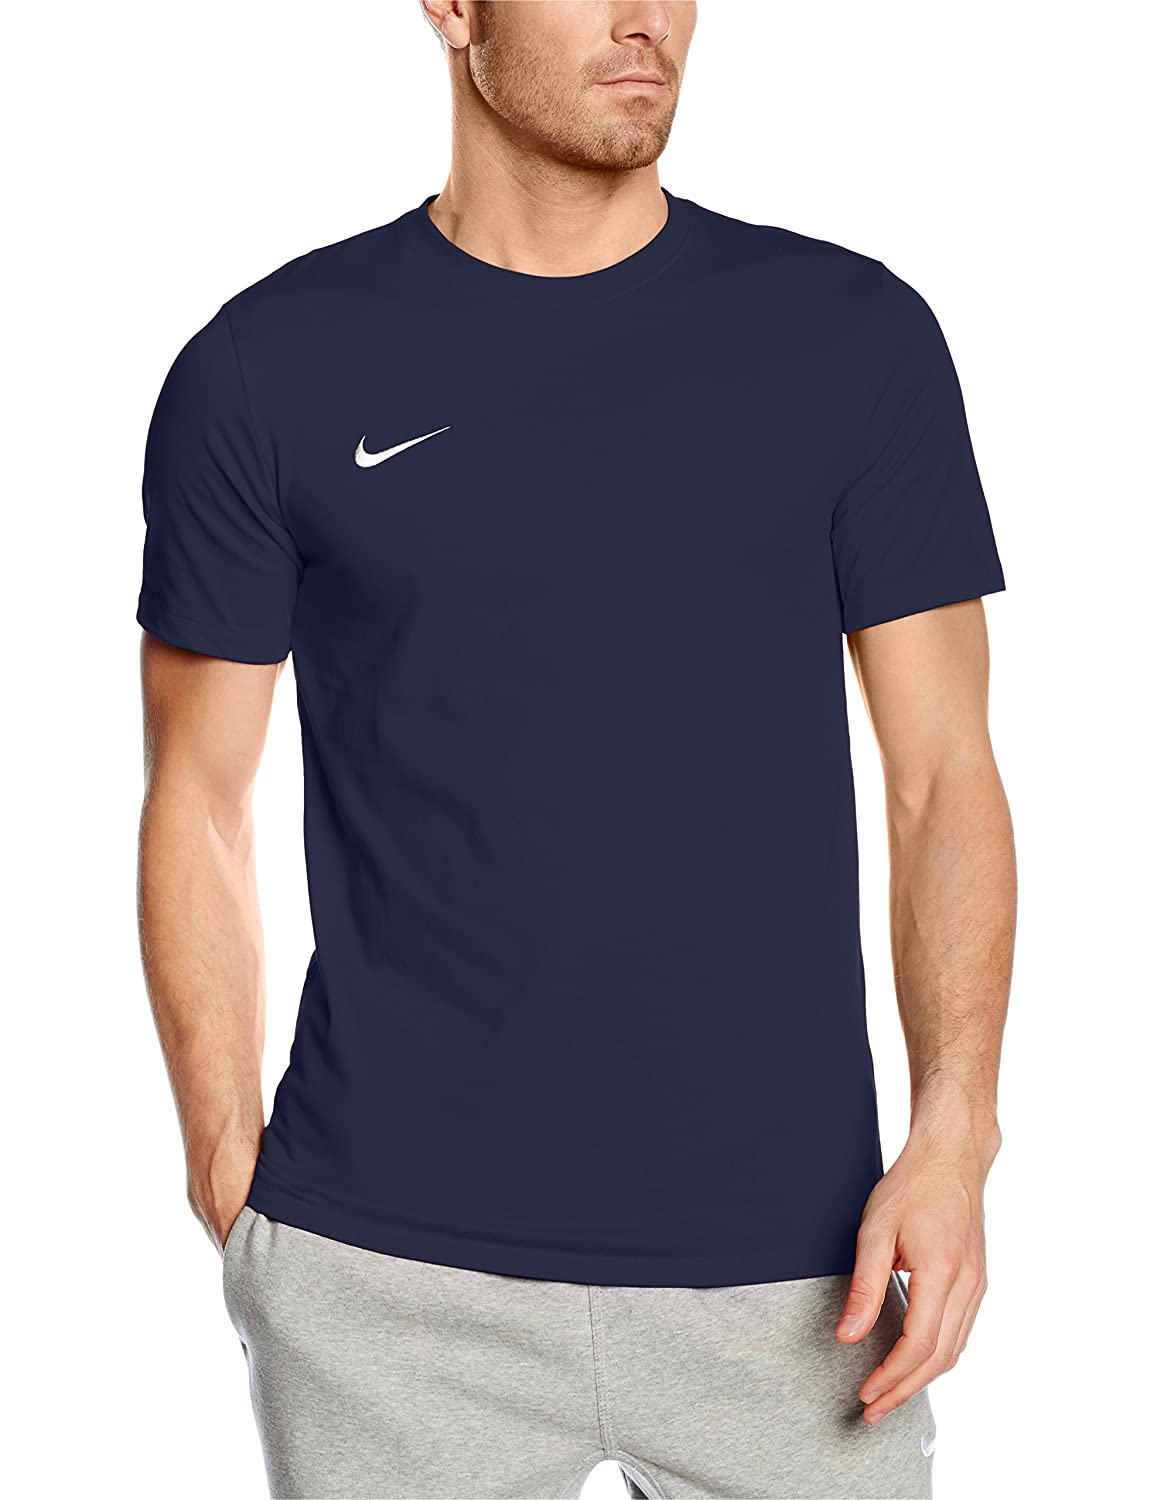 Nike Team Club Blend Tee T-Shirt Short Sleeve